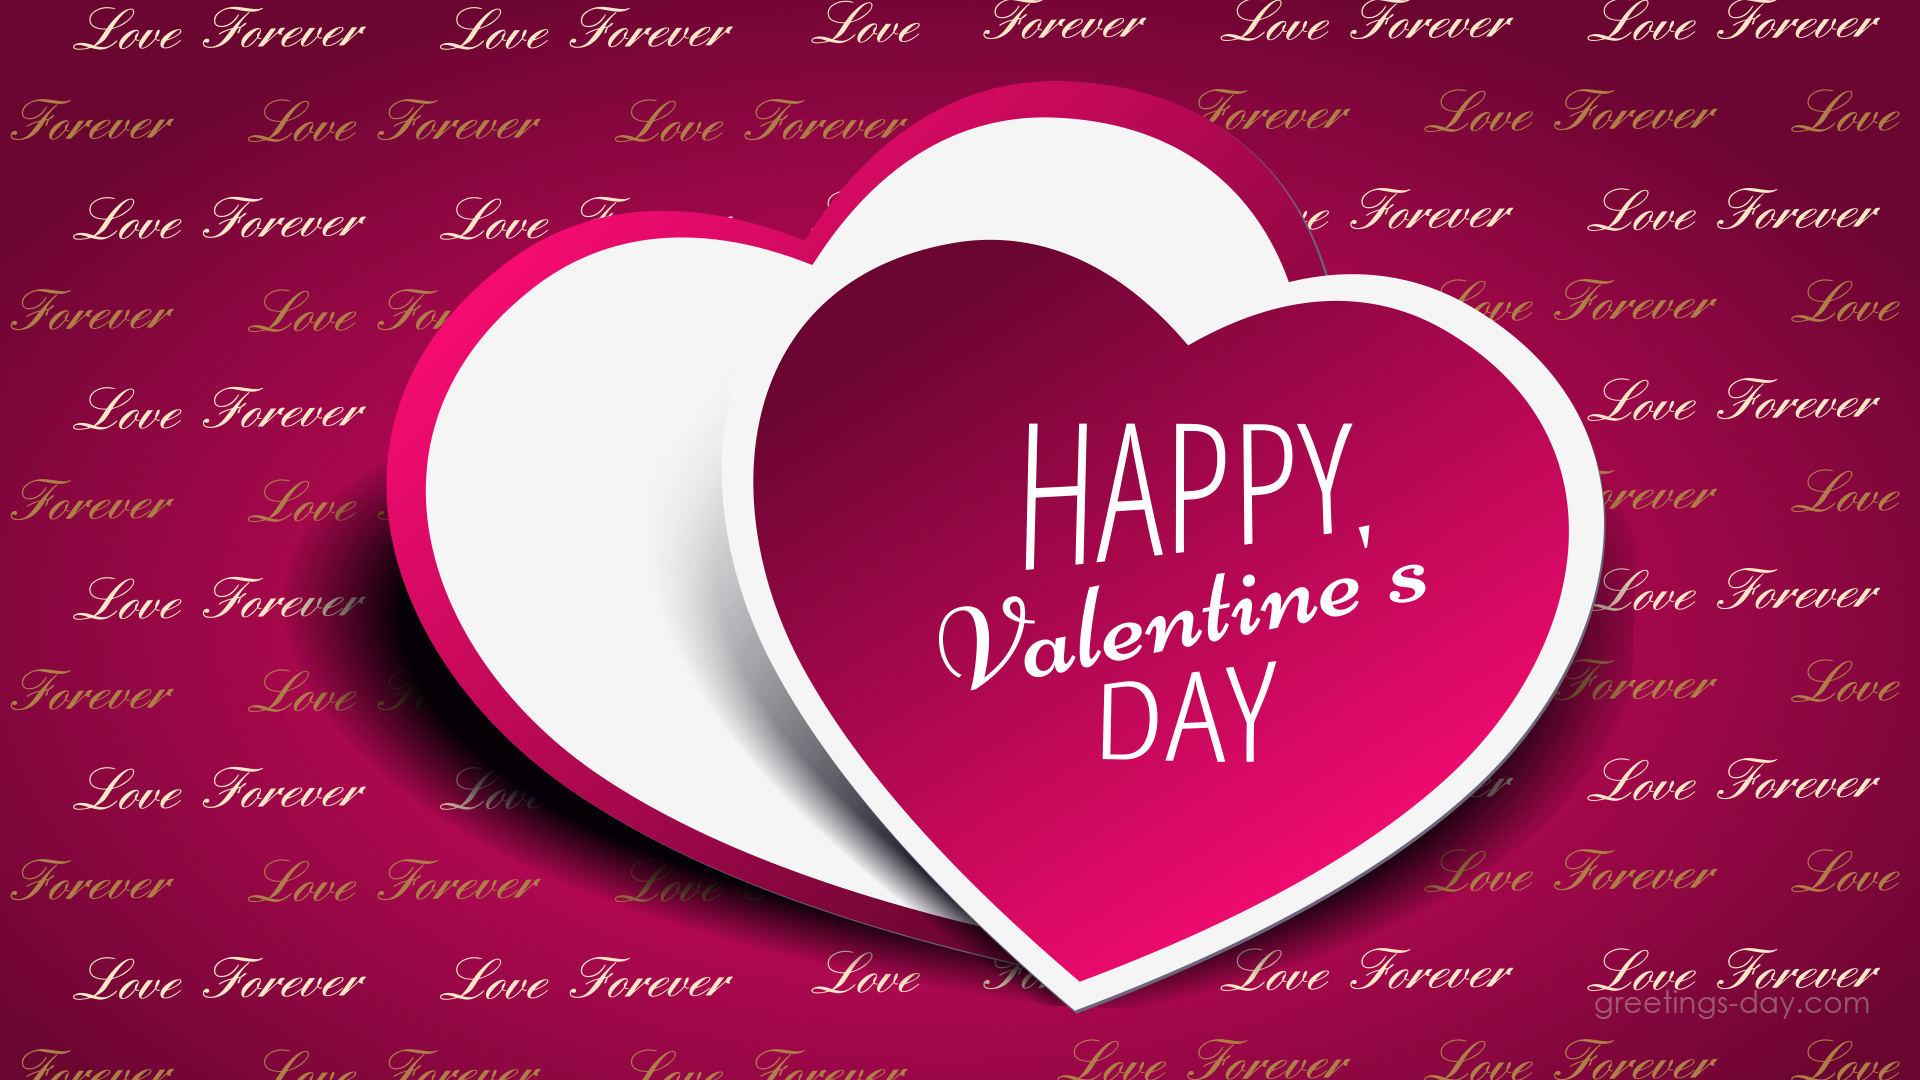 Love Quotes For Valentines Day Cards Sample Valentines Day Love Quotes Valentine S Day Picture